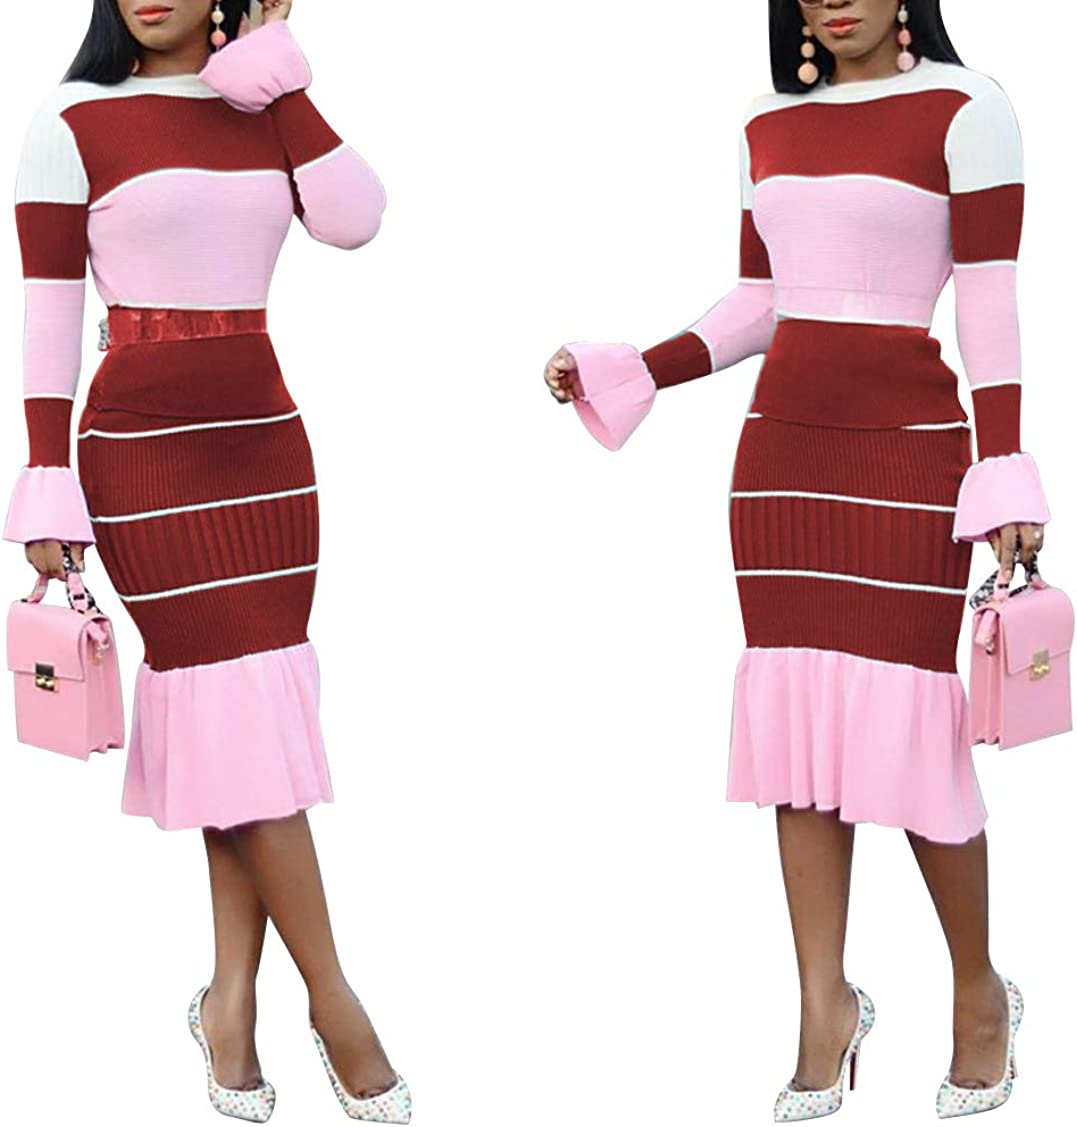 Womens 2 Pieces Outfit Long Sleeve O Neck Color Block Blouse Pencil Skirt Set